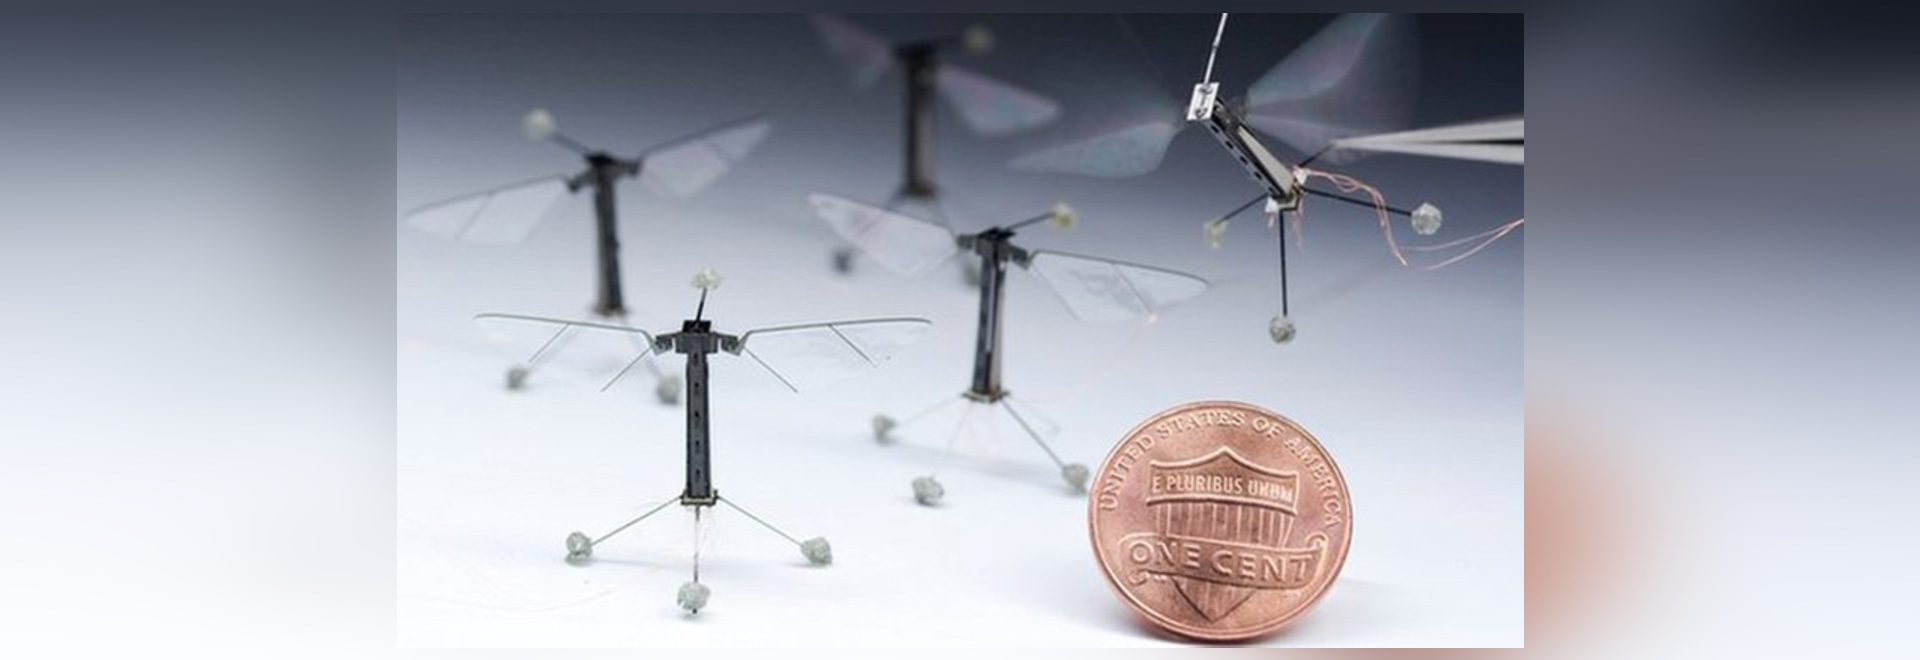 ROBOTIC INSECT BY HARVARD UNIVERSITY